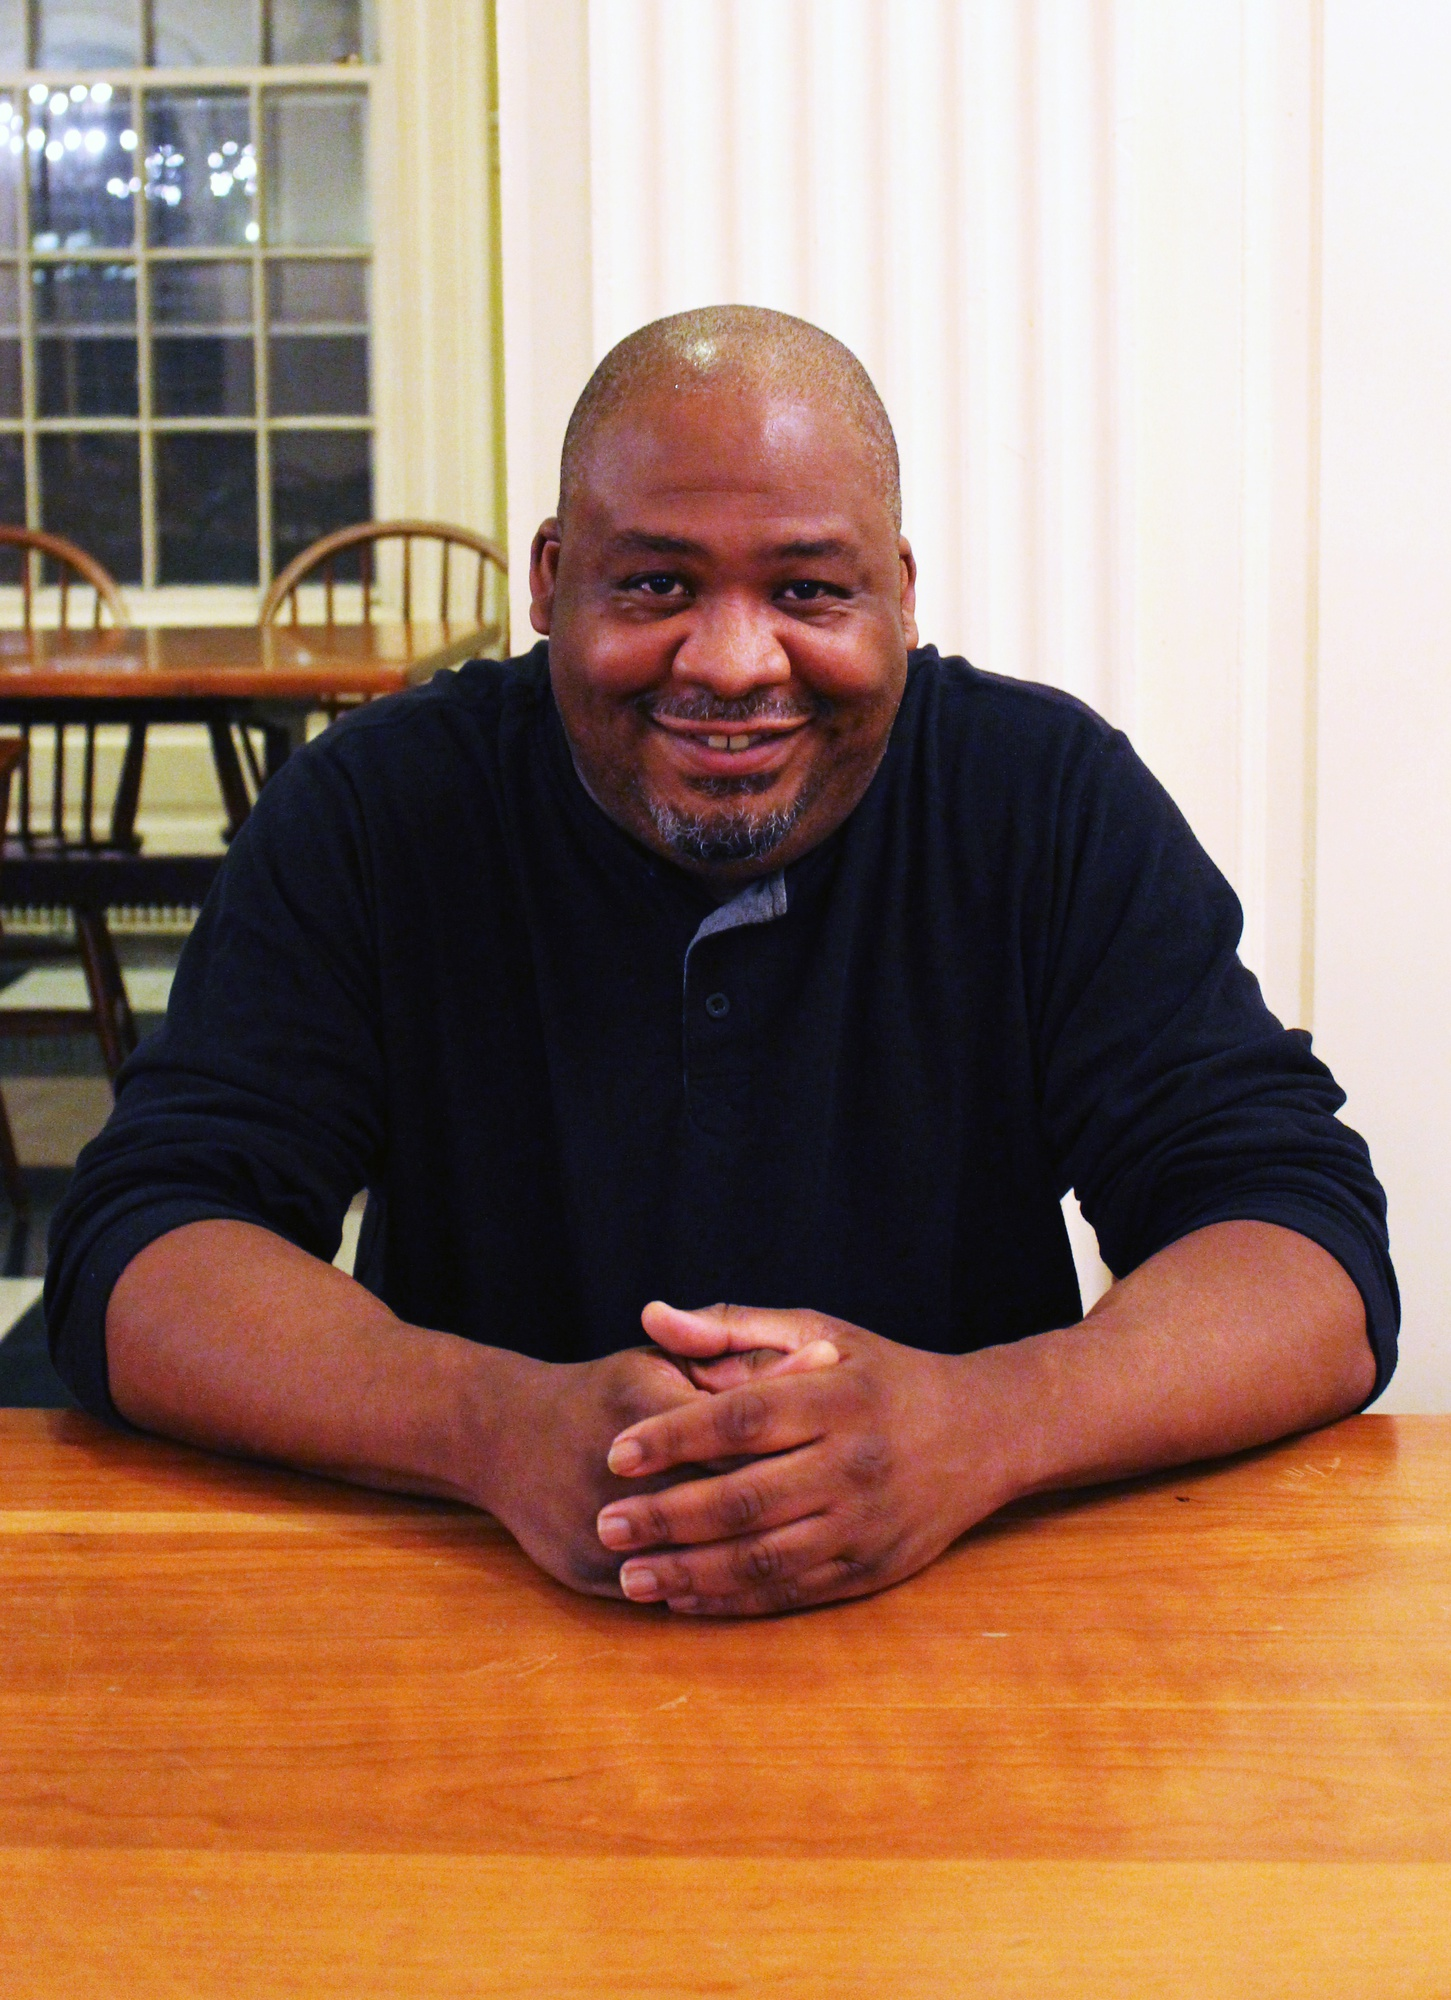 Scott Poulson-Bryant is currently a resident tutor at Kirkland House and coordinates the writing, race relations, and BGLTQ advising.